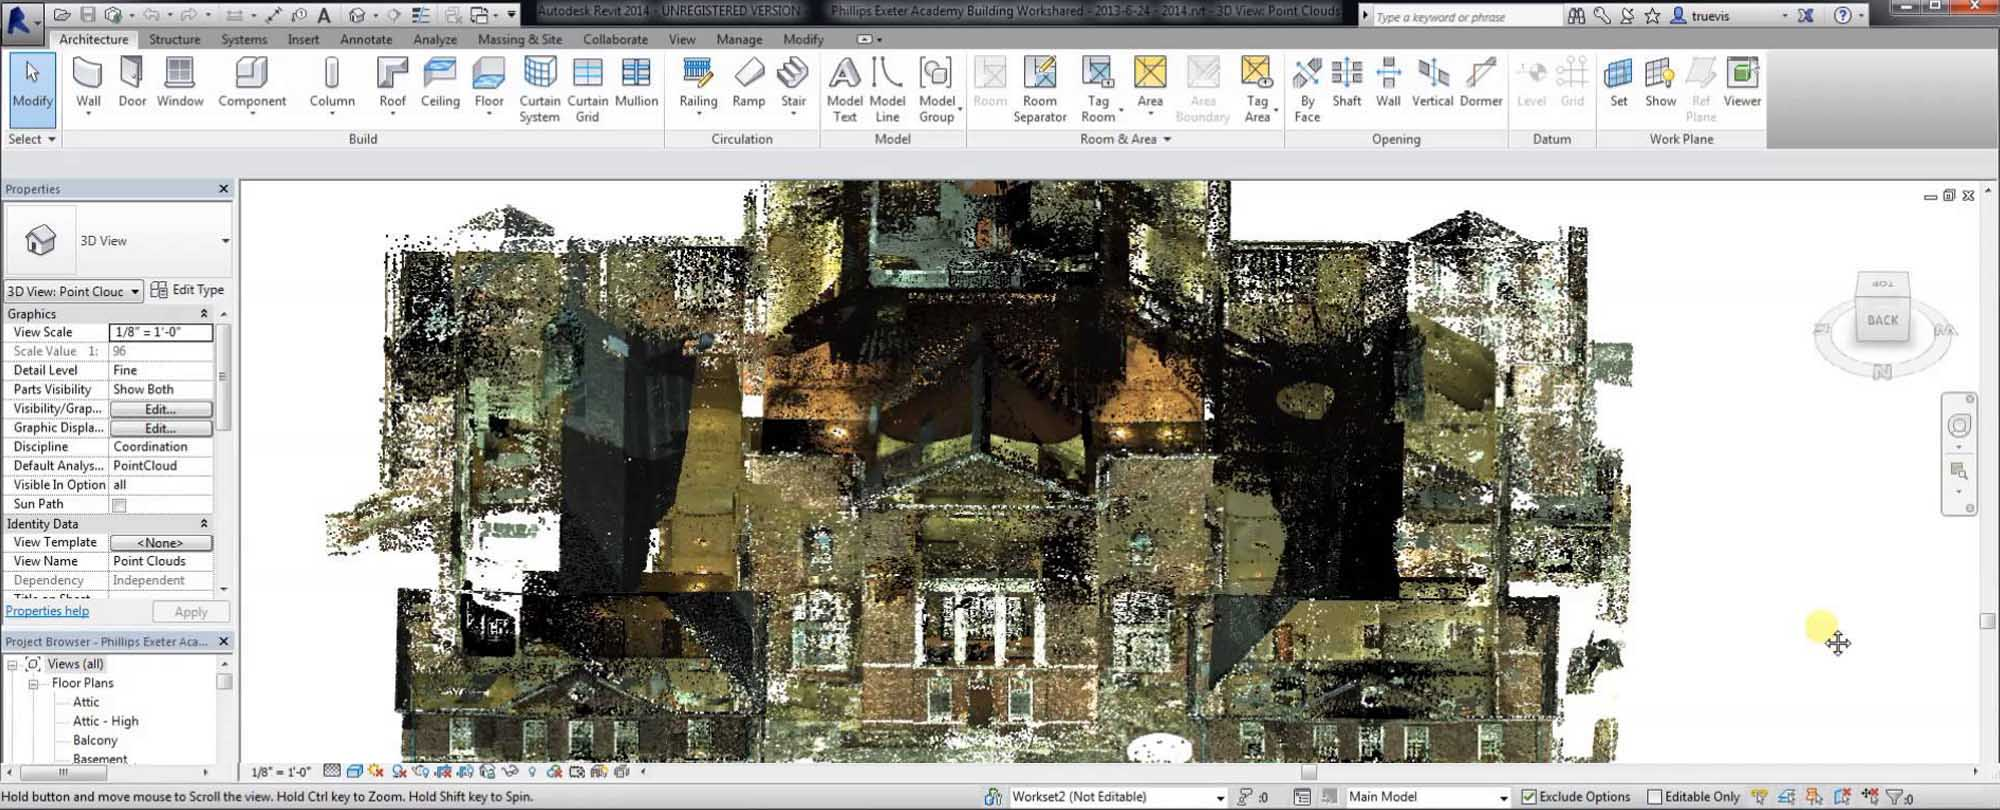 Use of 3D BIM Model and 3D Laser Scanner in Facilities